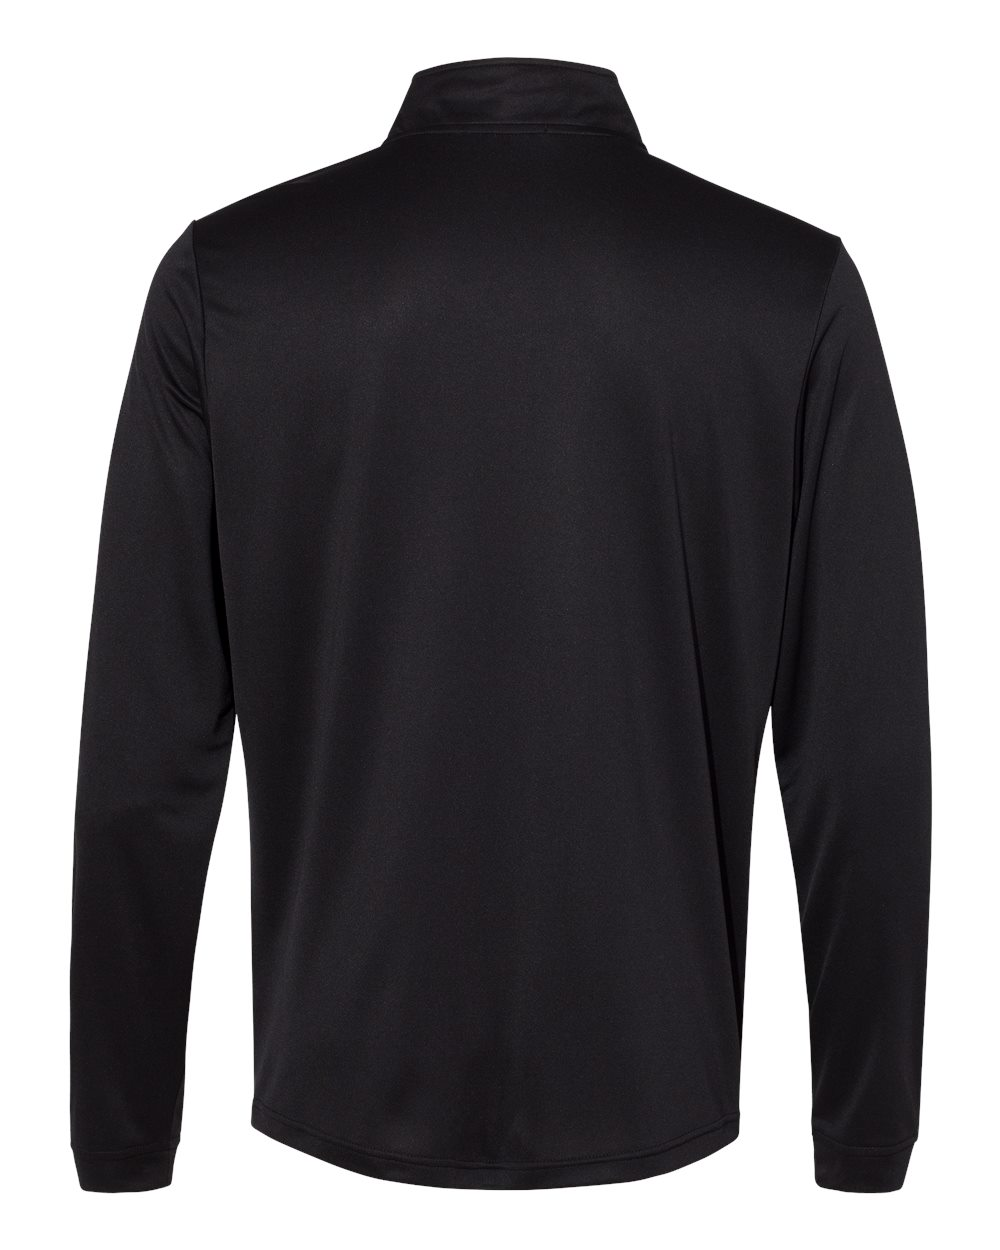 Adidas-Mens-Lightweight-Quarter-Zip-Pullover-Shirt-polyester-A401-up-to-4XL thumbnail 7